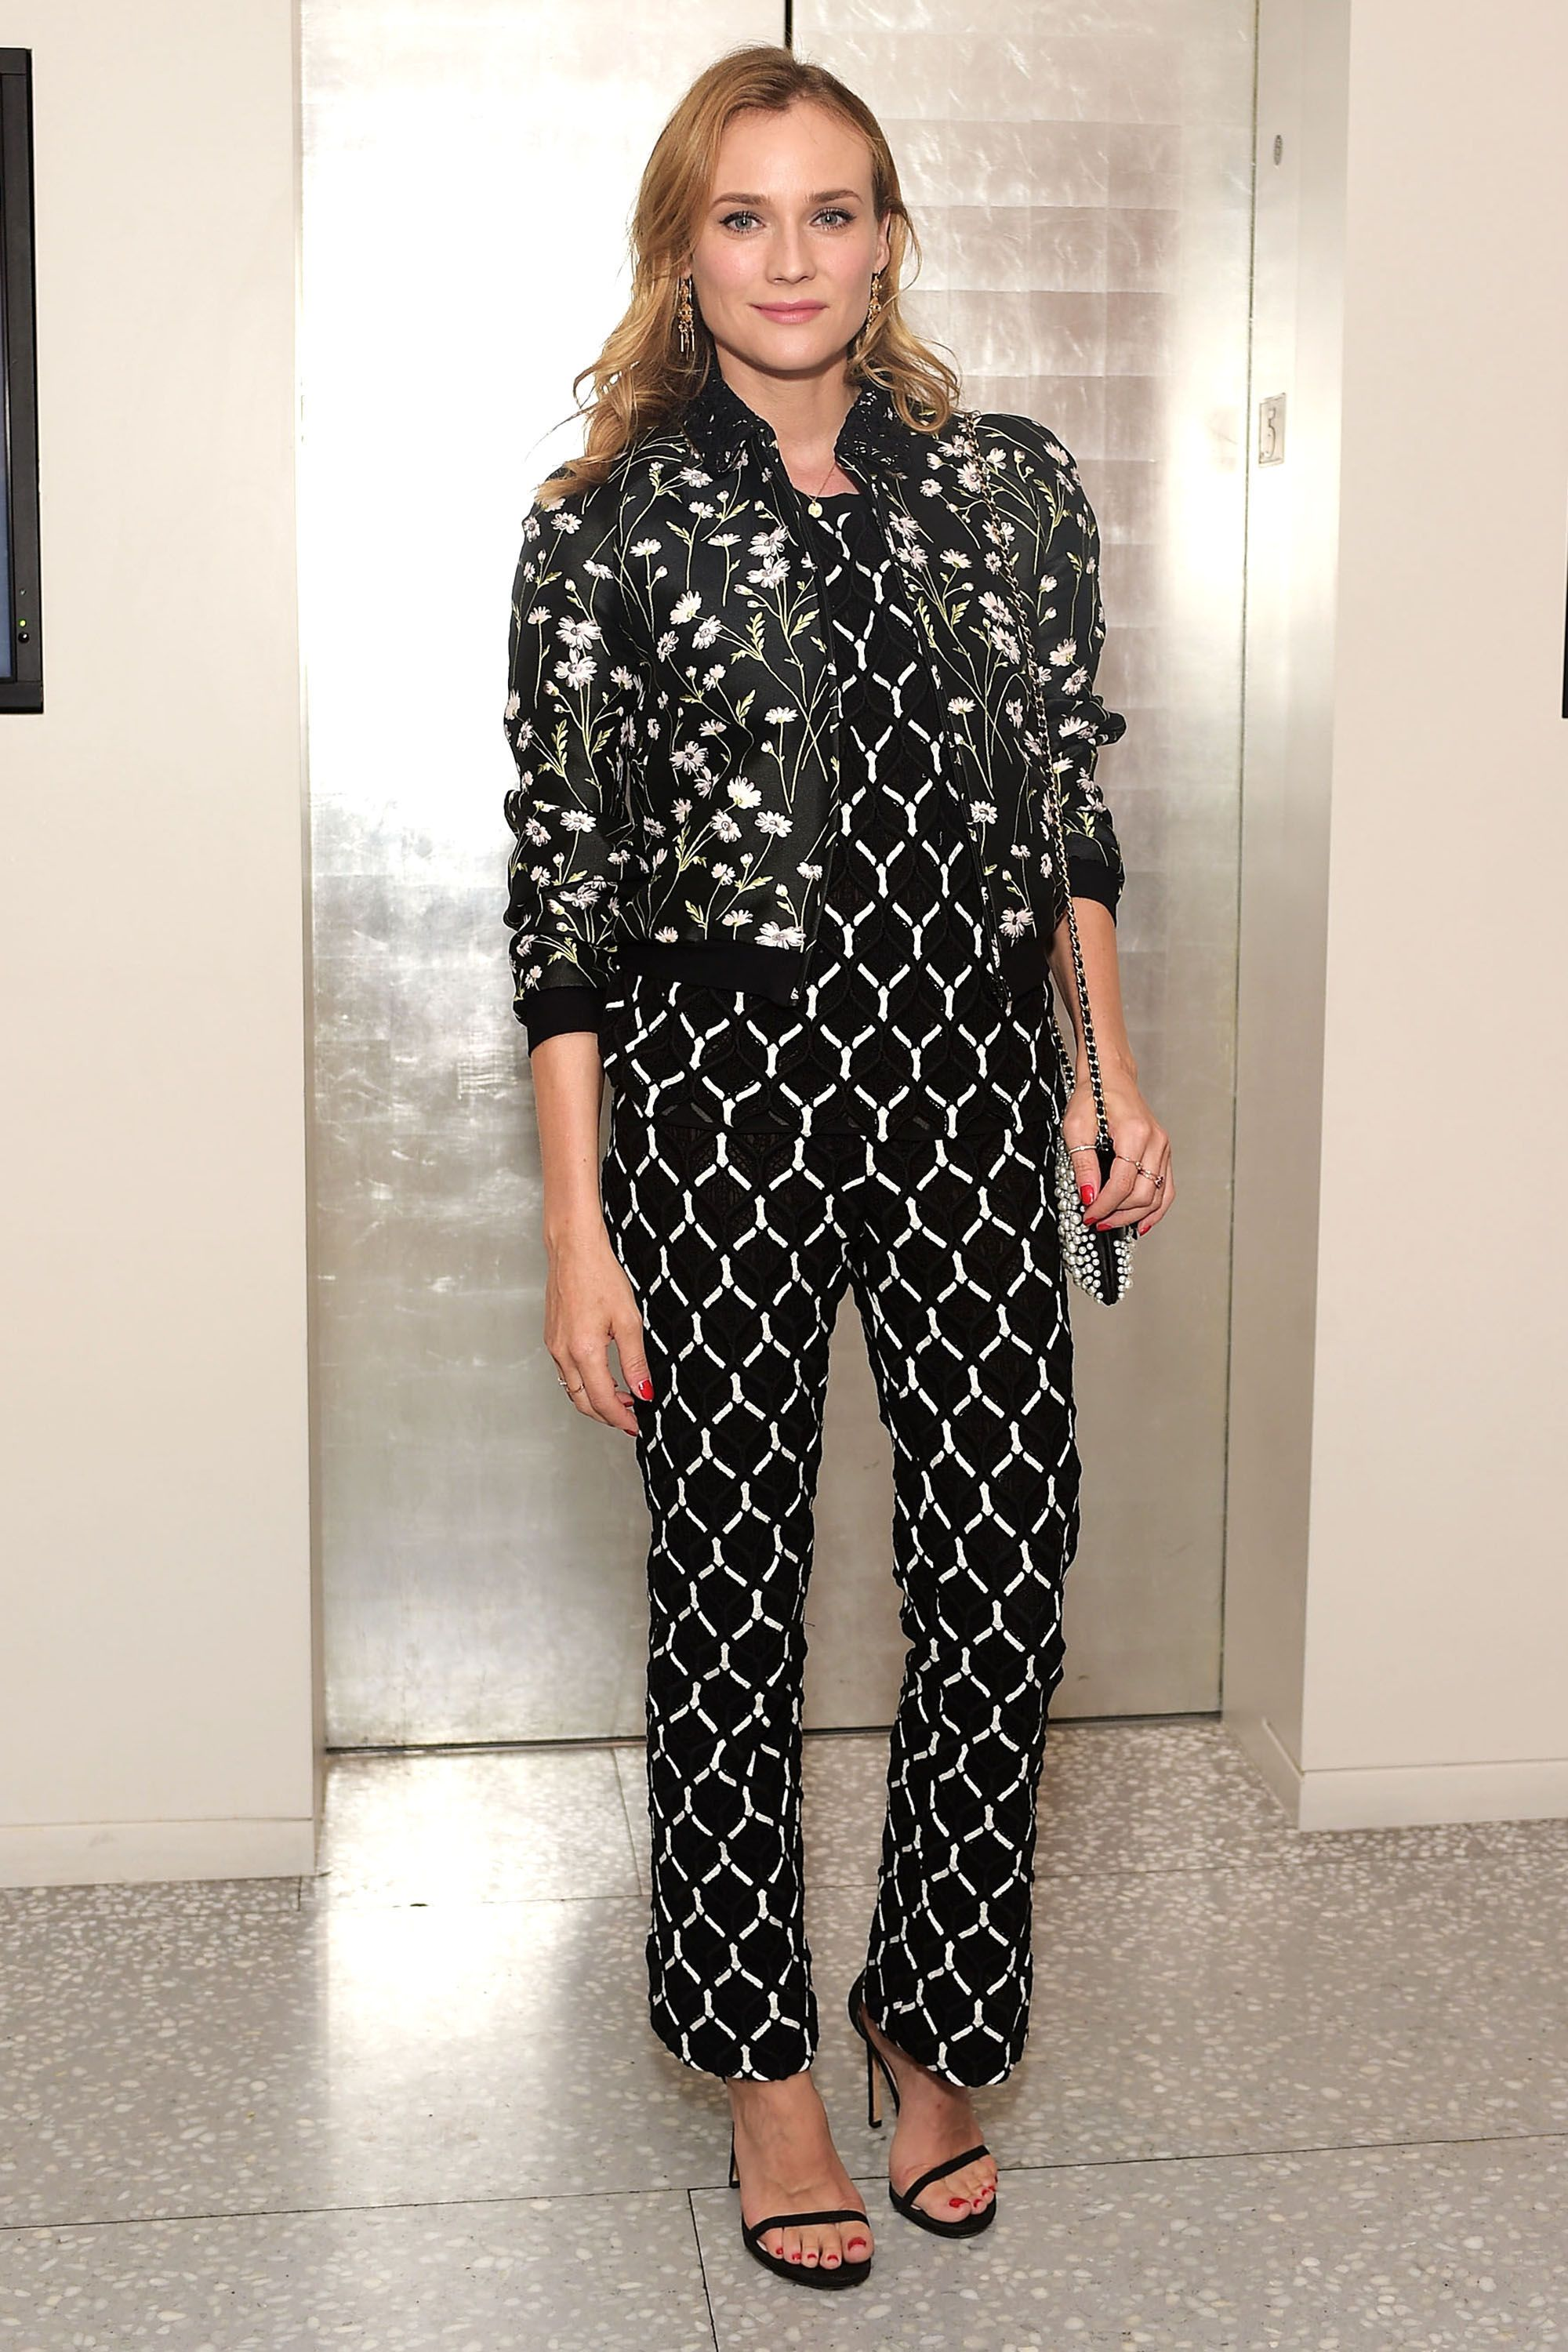 <p><strong>What: </strong>Giambattista Valli and Stuart Weitzman shoes</p><p><strong>Where: </strong>Women In Film Event Hosted by Barney's New York</p><p><strong>Why:</strong> The bomber jacket lends a cool and sporty touch to this Parisian chic ensemble. </p>